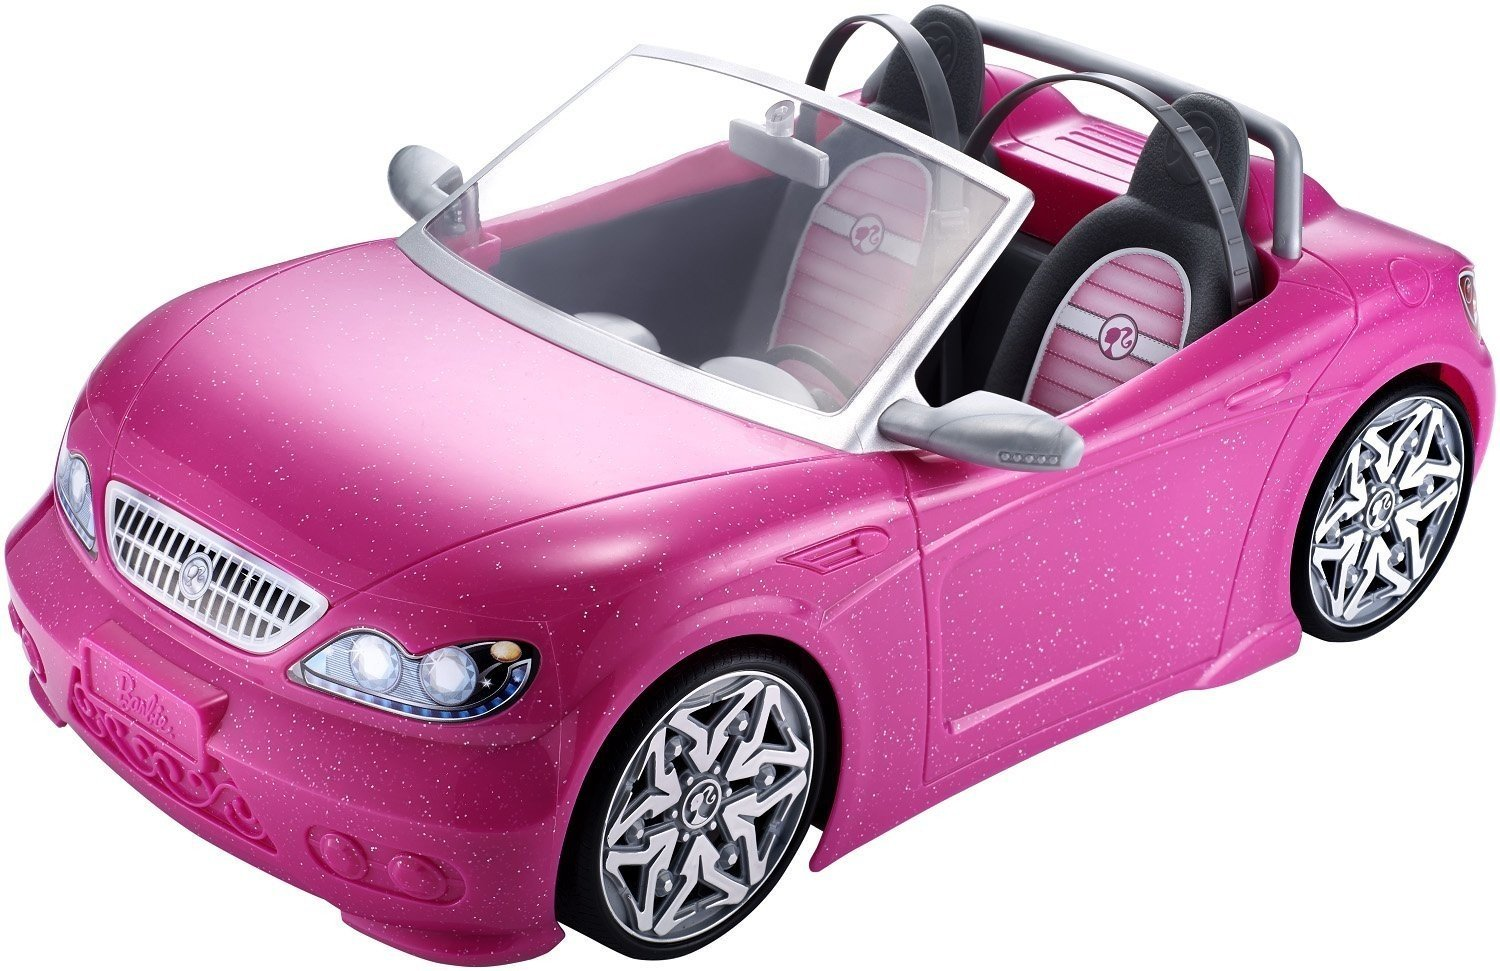 Barbie Glam Convertible (Discontinued by manufacturer)